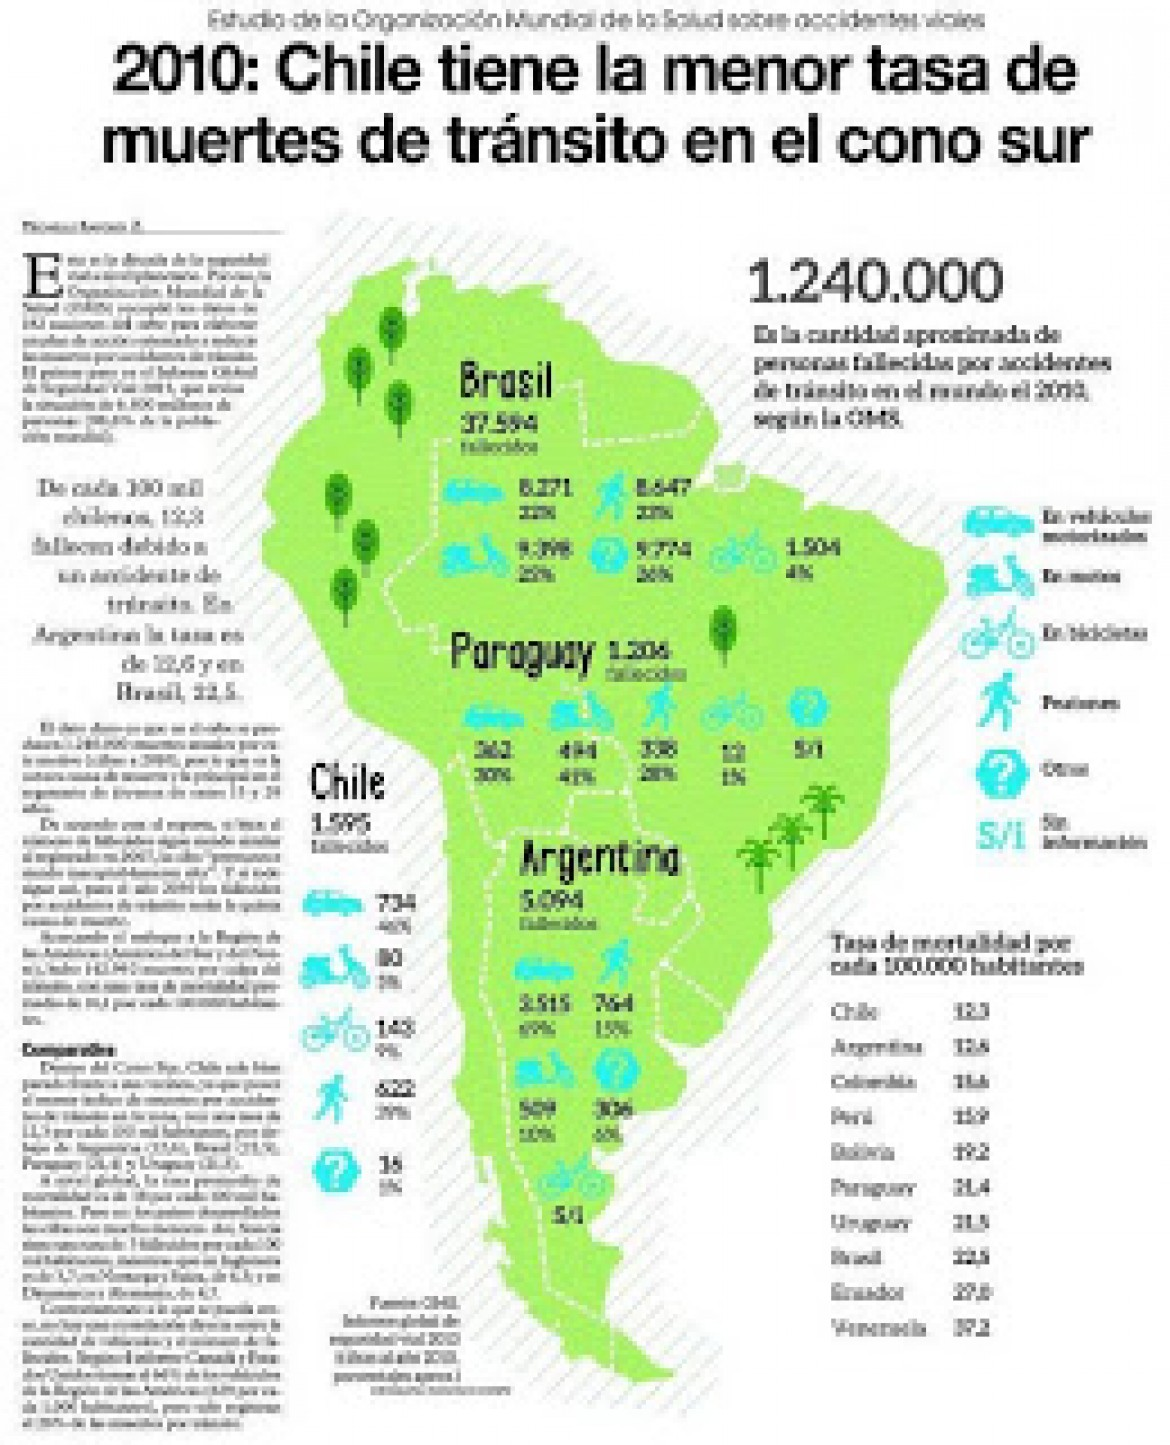 Statistics on Traffic Fatalities in Chile